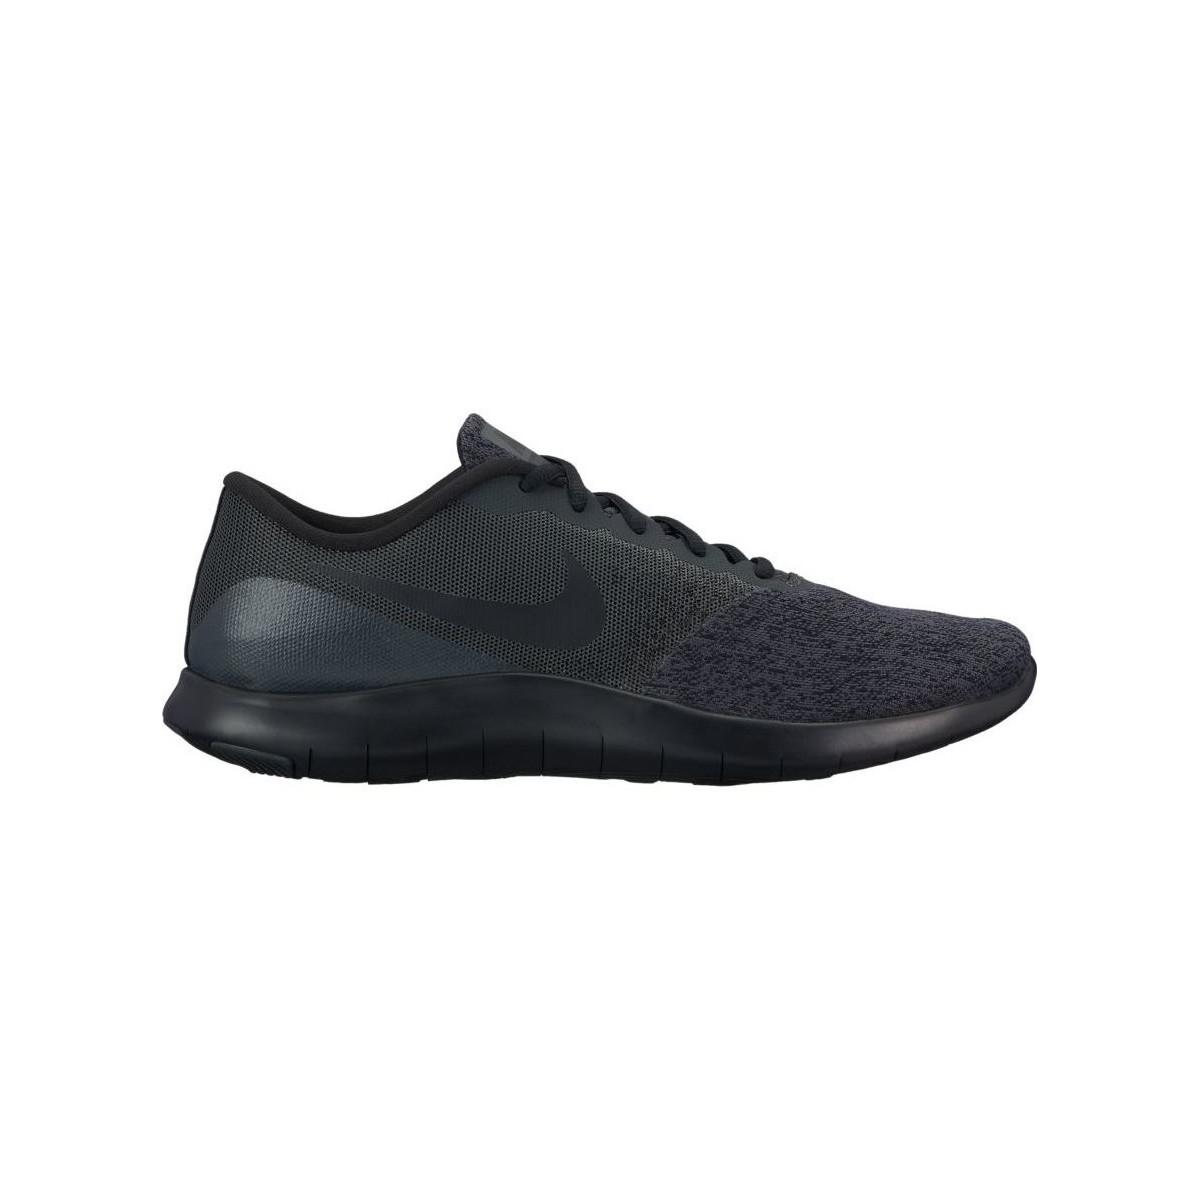 66ad2a5e86a7b Nike Flex Contact Running Shoe Men s Shoes (trainers) In Black in ...